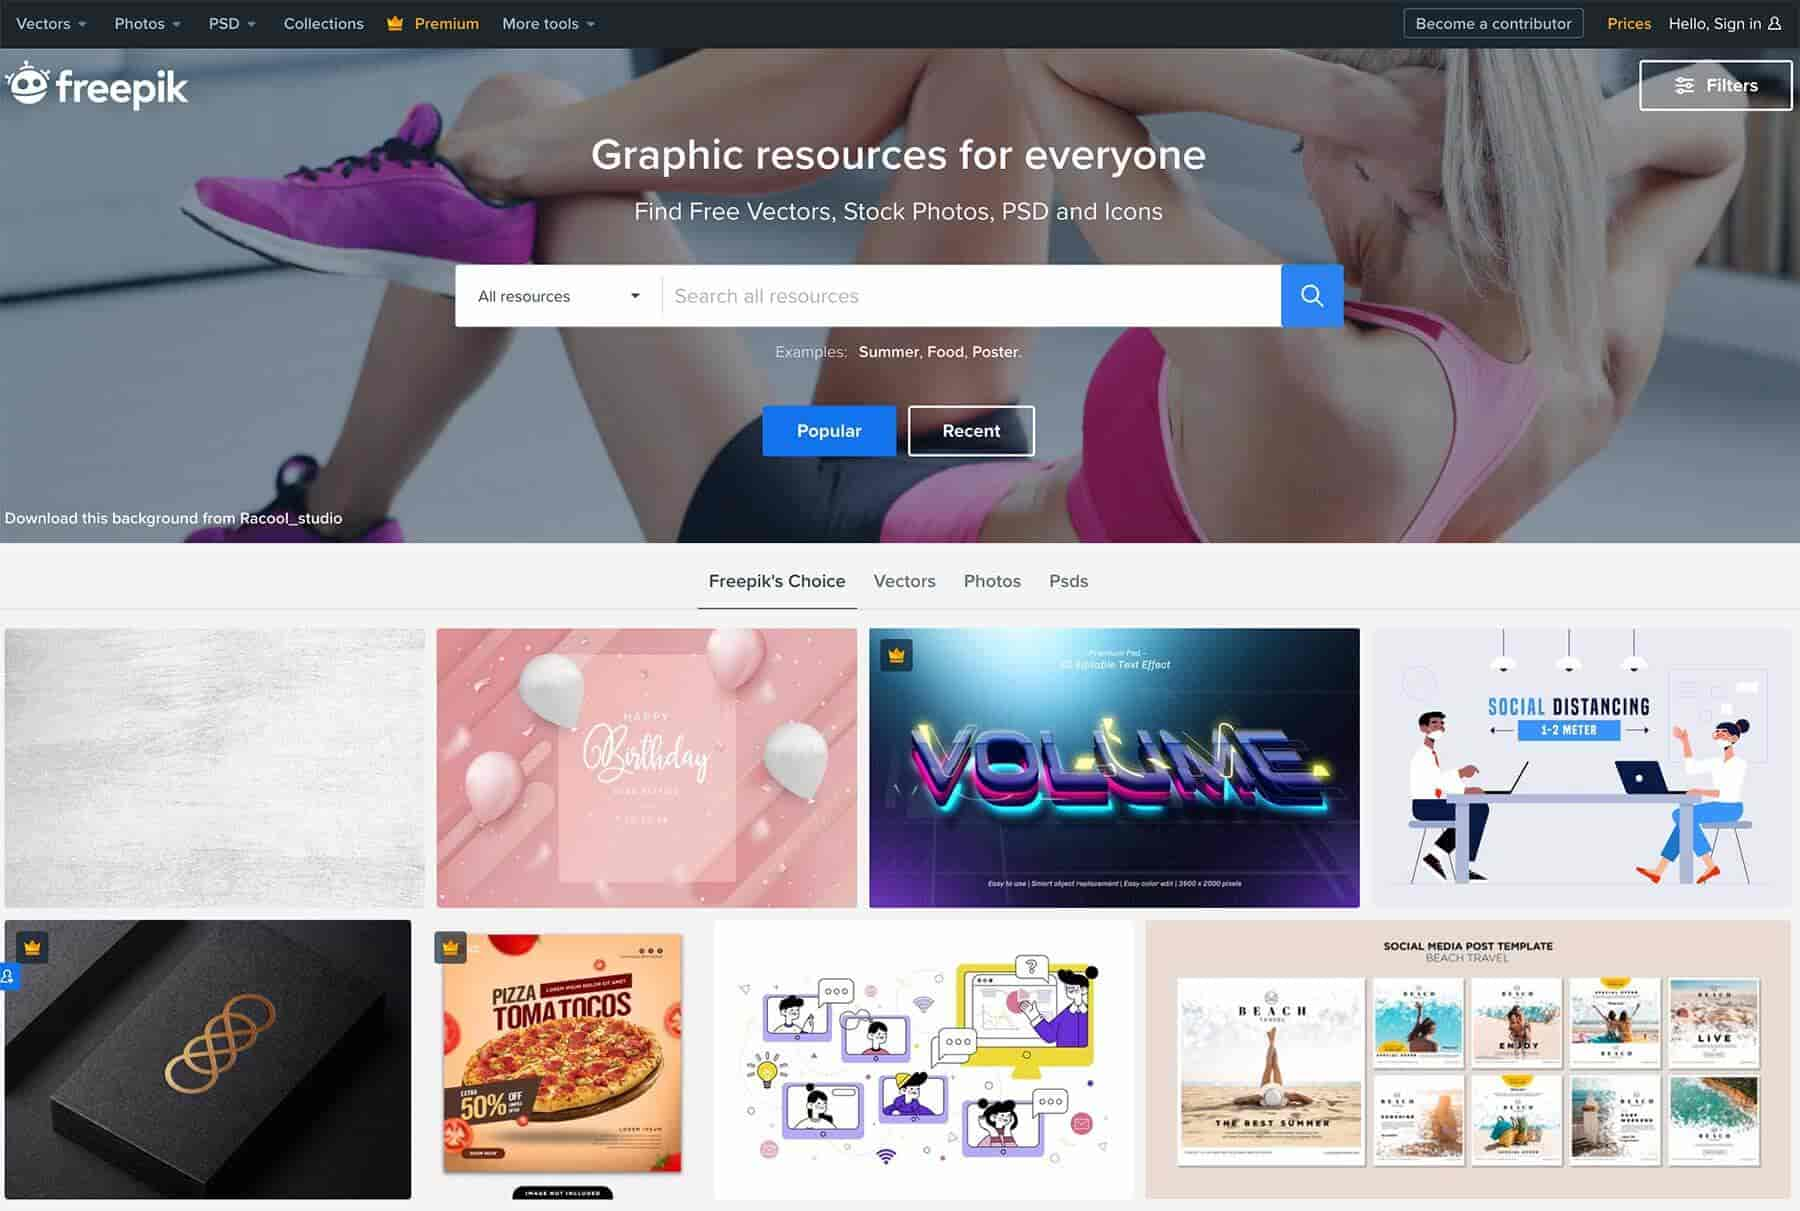 Freepik: A Dynamic Platform for Graphic Resources